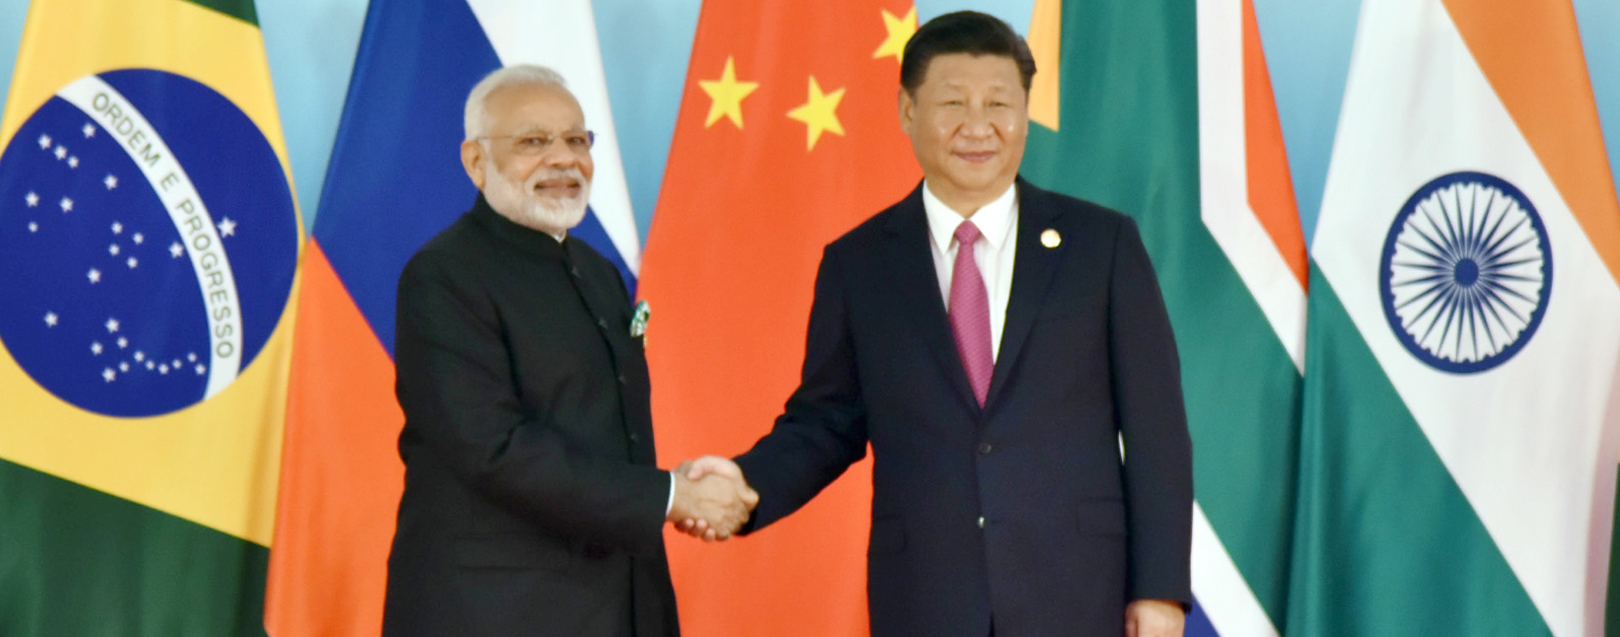 BRICS: Modi and Xi expected to meet on Sept 5; PM moots co-op between Contingent Reserve Arrangement and IMF